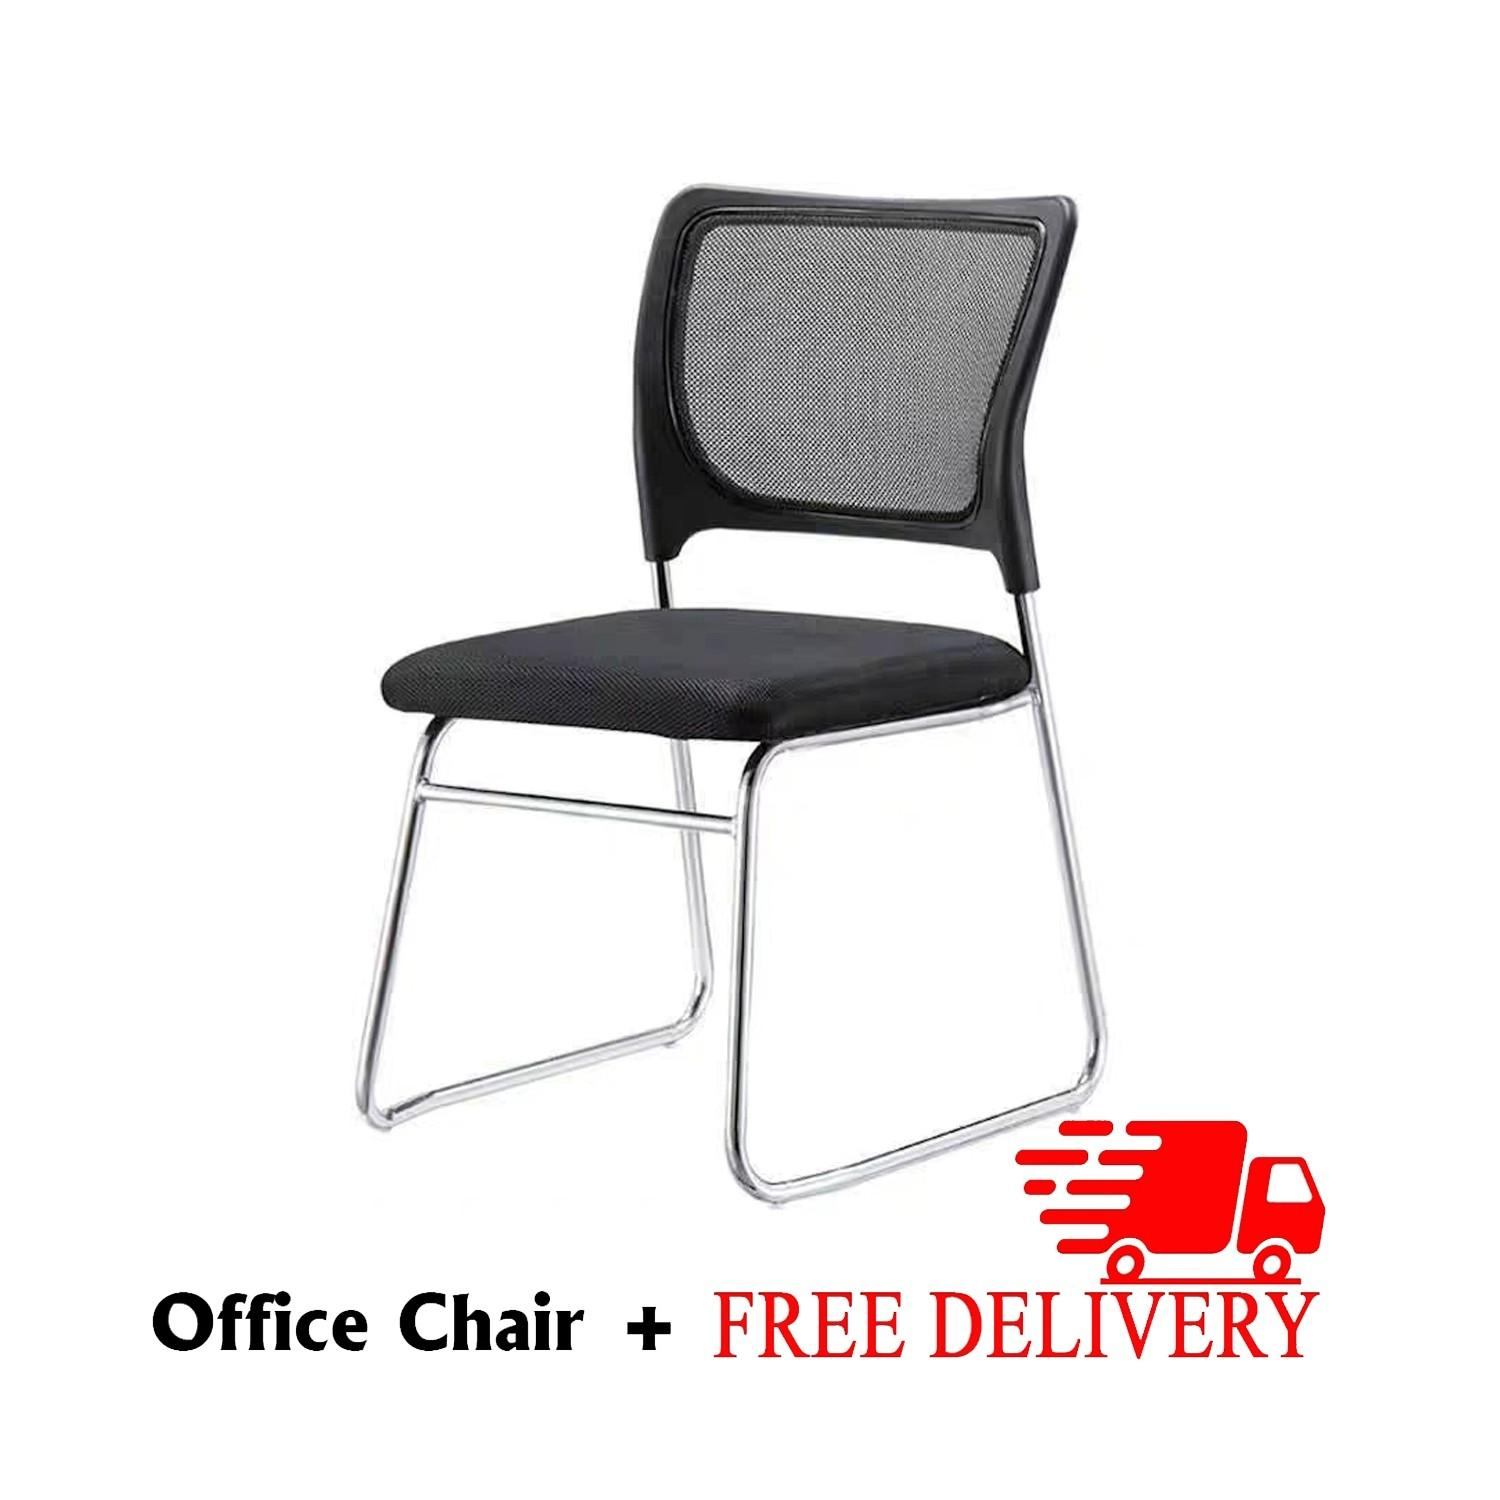 LIVING MALL_Coretta Office Chair_FREE DELIVERY